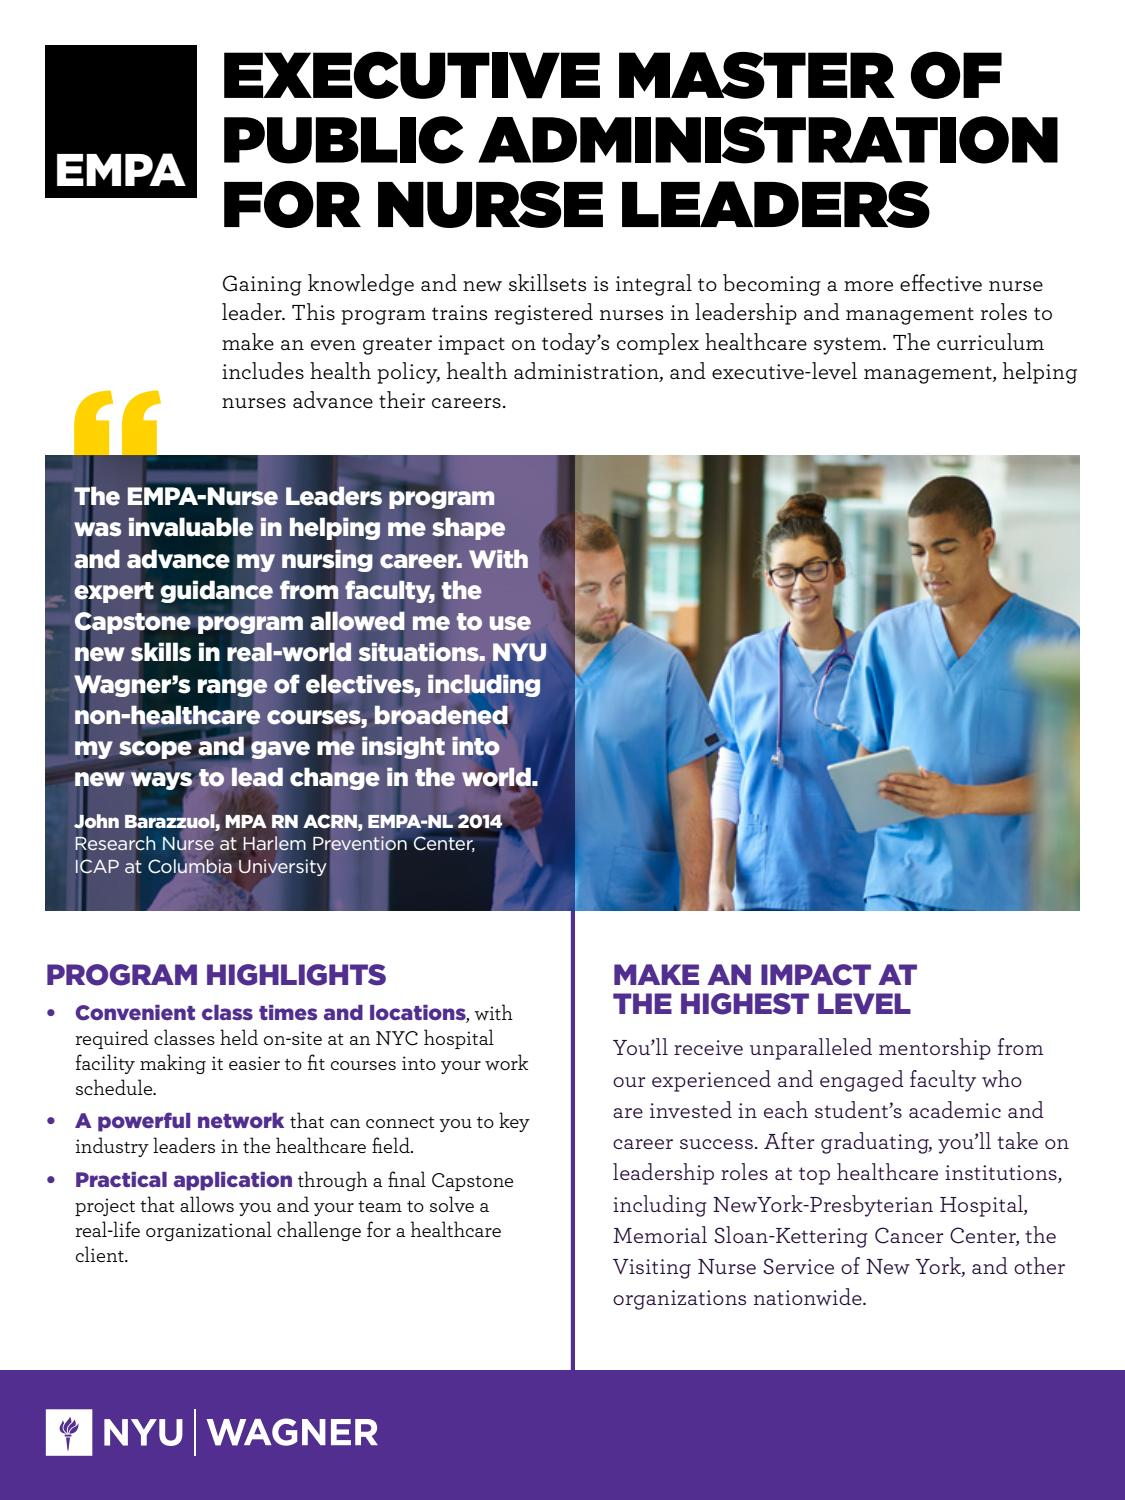 Executive Master of Public Administration for Nurse Leaders by NYU